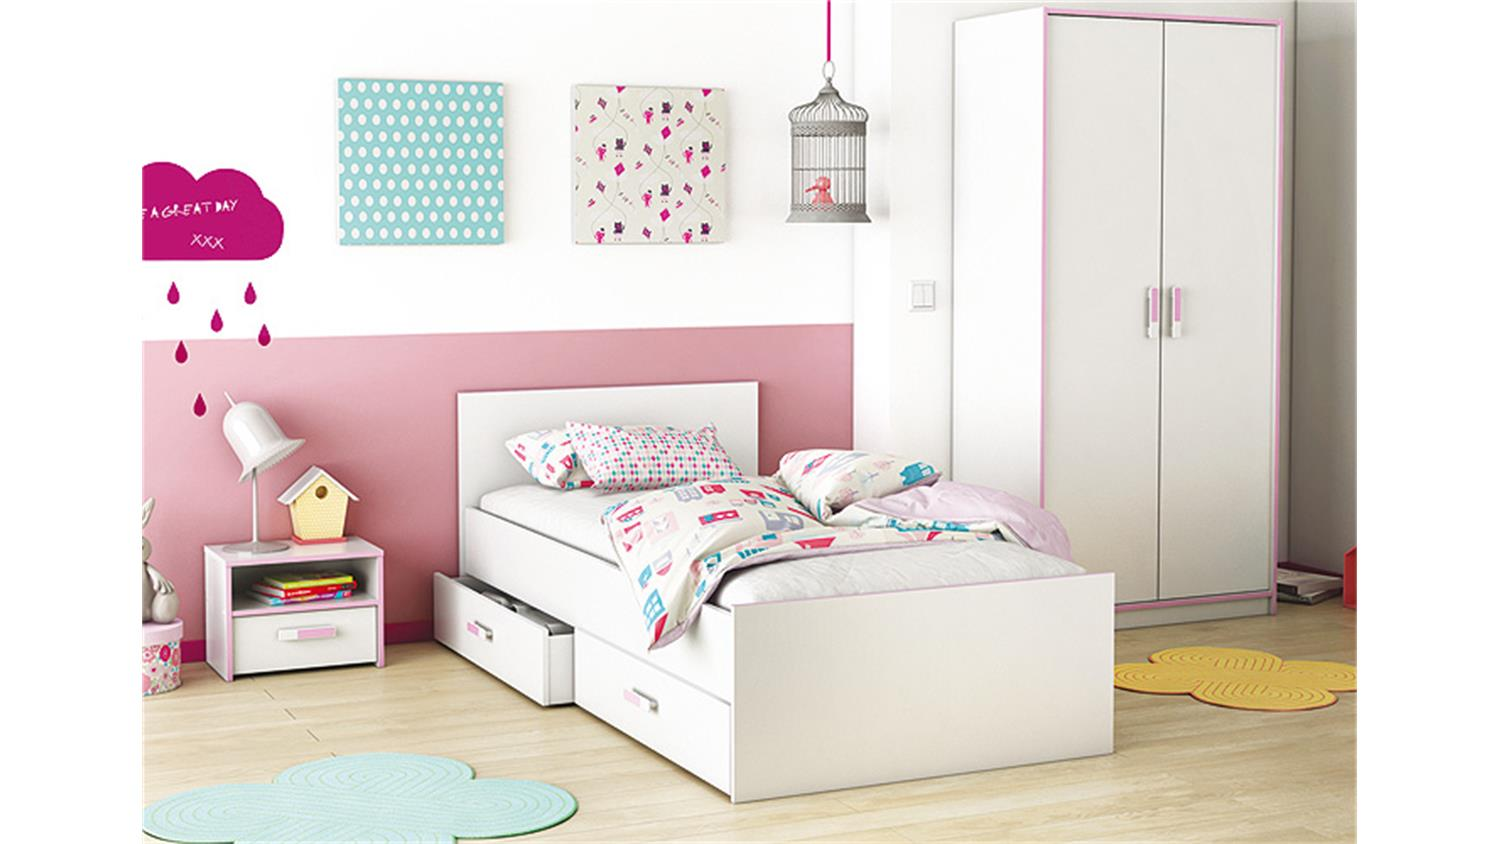 kinderzimmerset switch kinderzimmer wei rosa oder blau. Black Bedroom Furniture Sets. Home Design Ideas